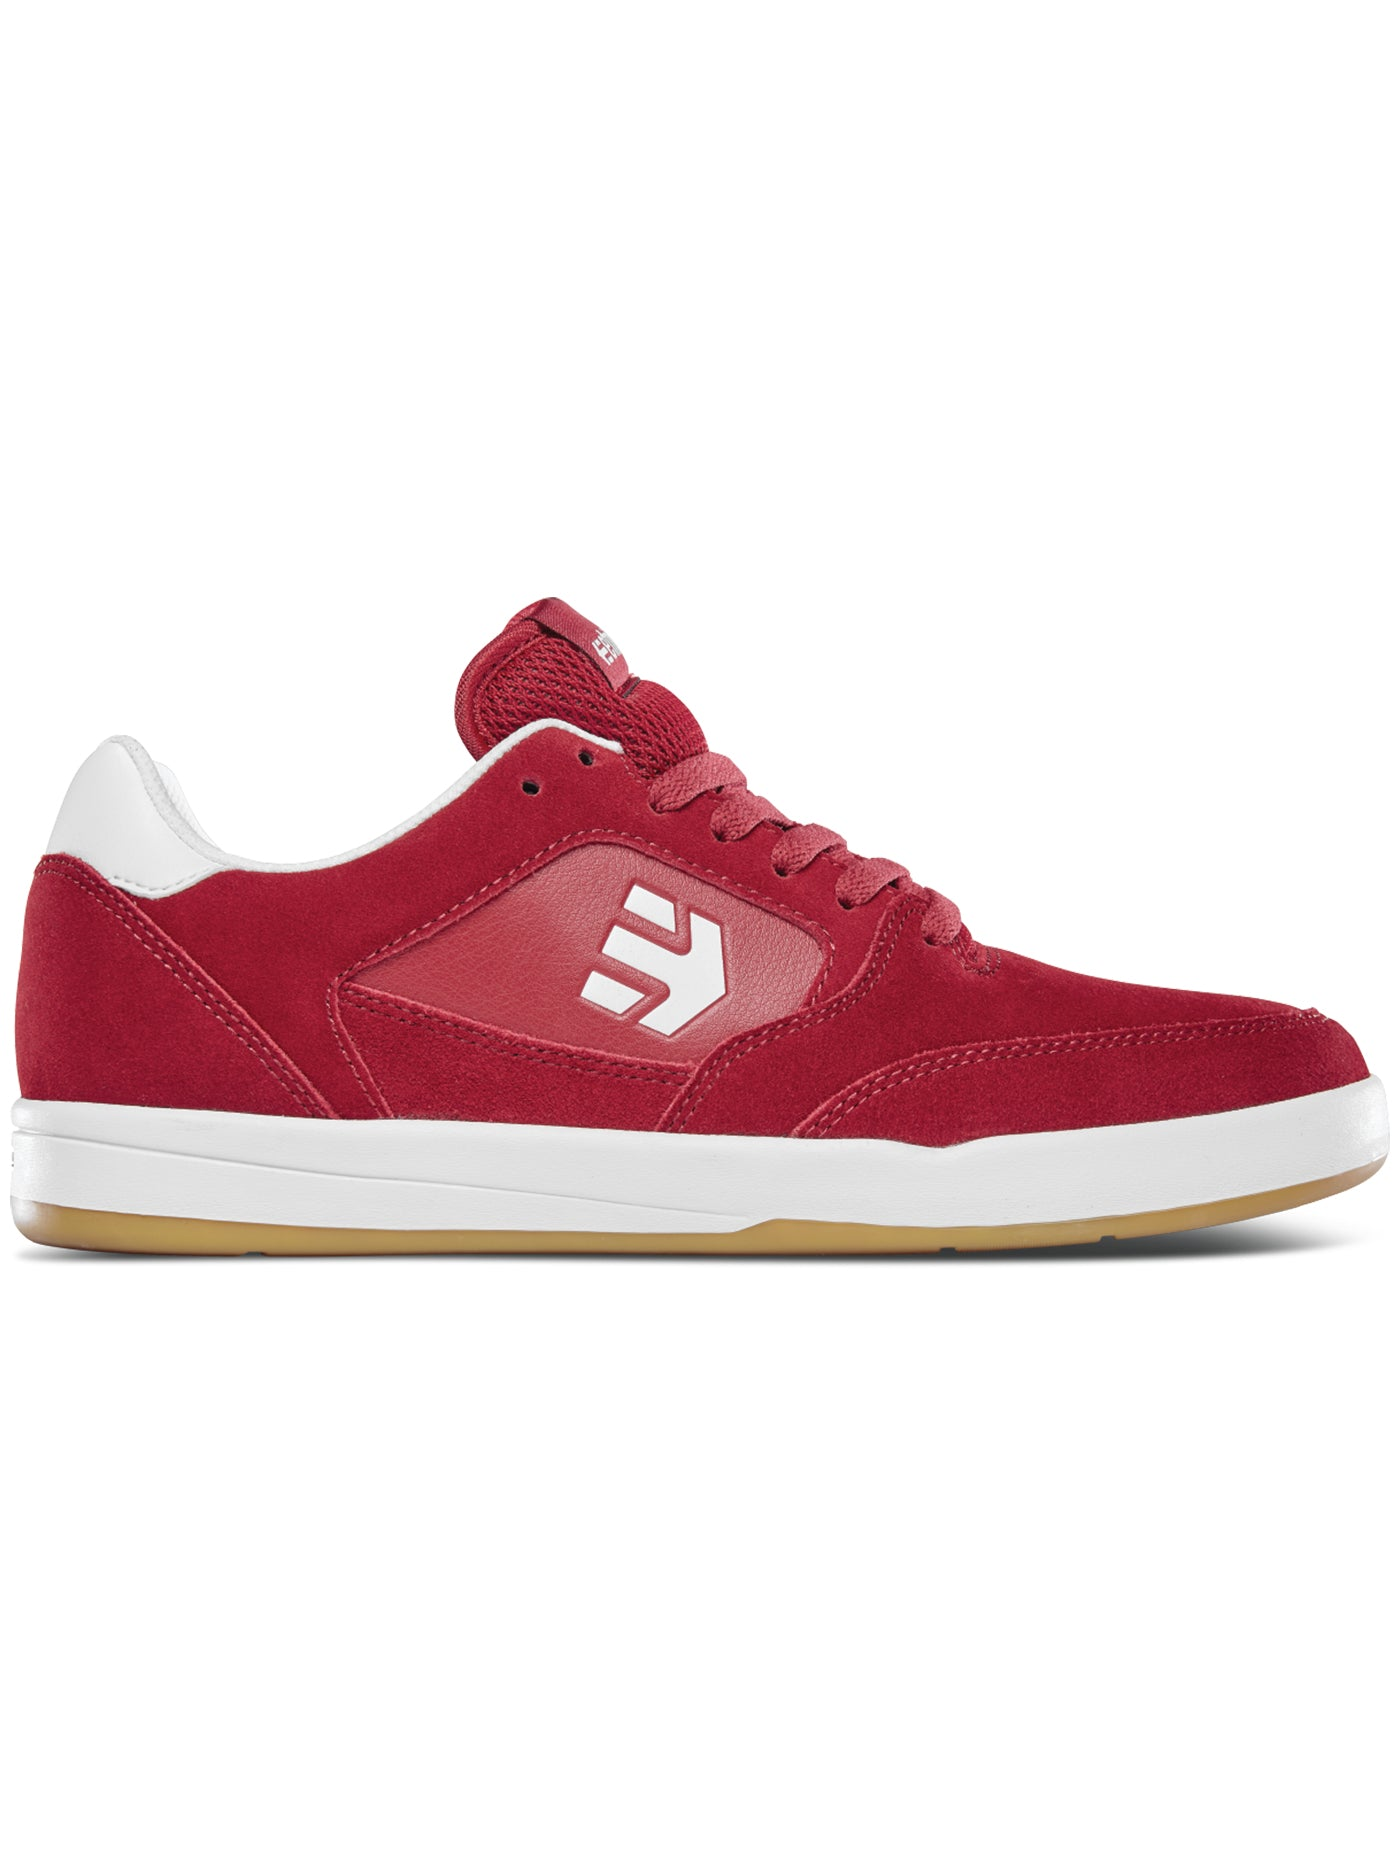 RED/WHITE/GUM (619)